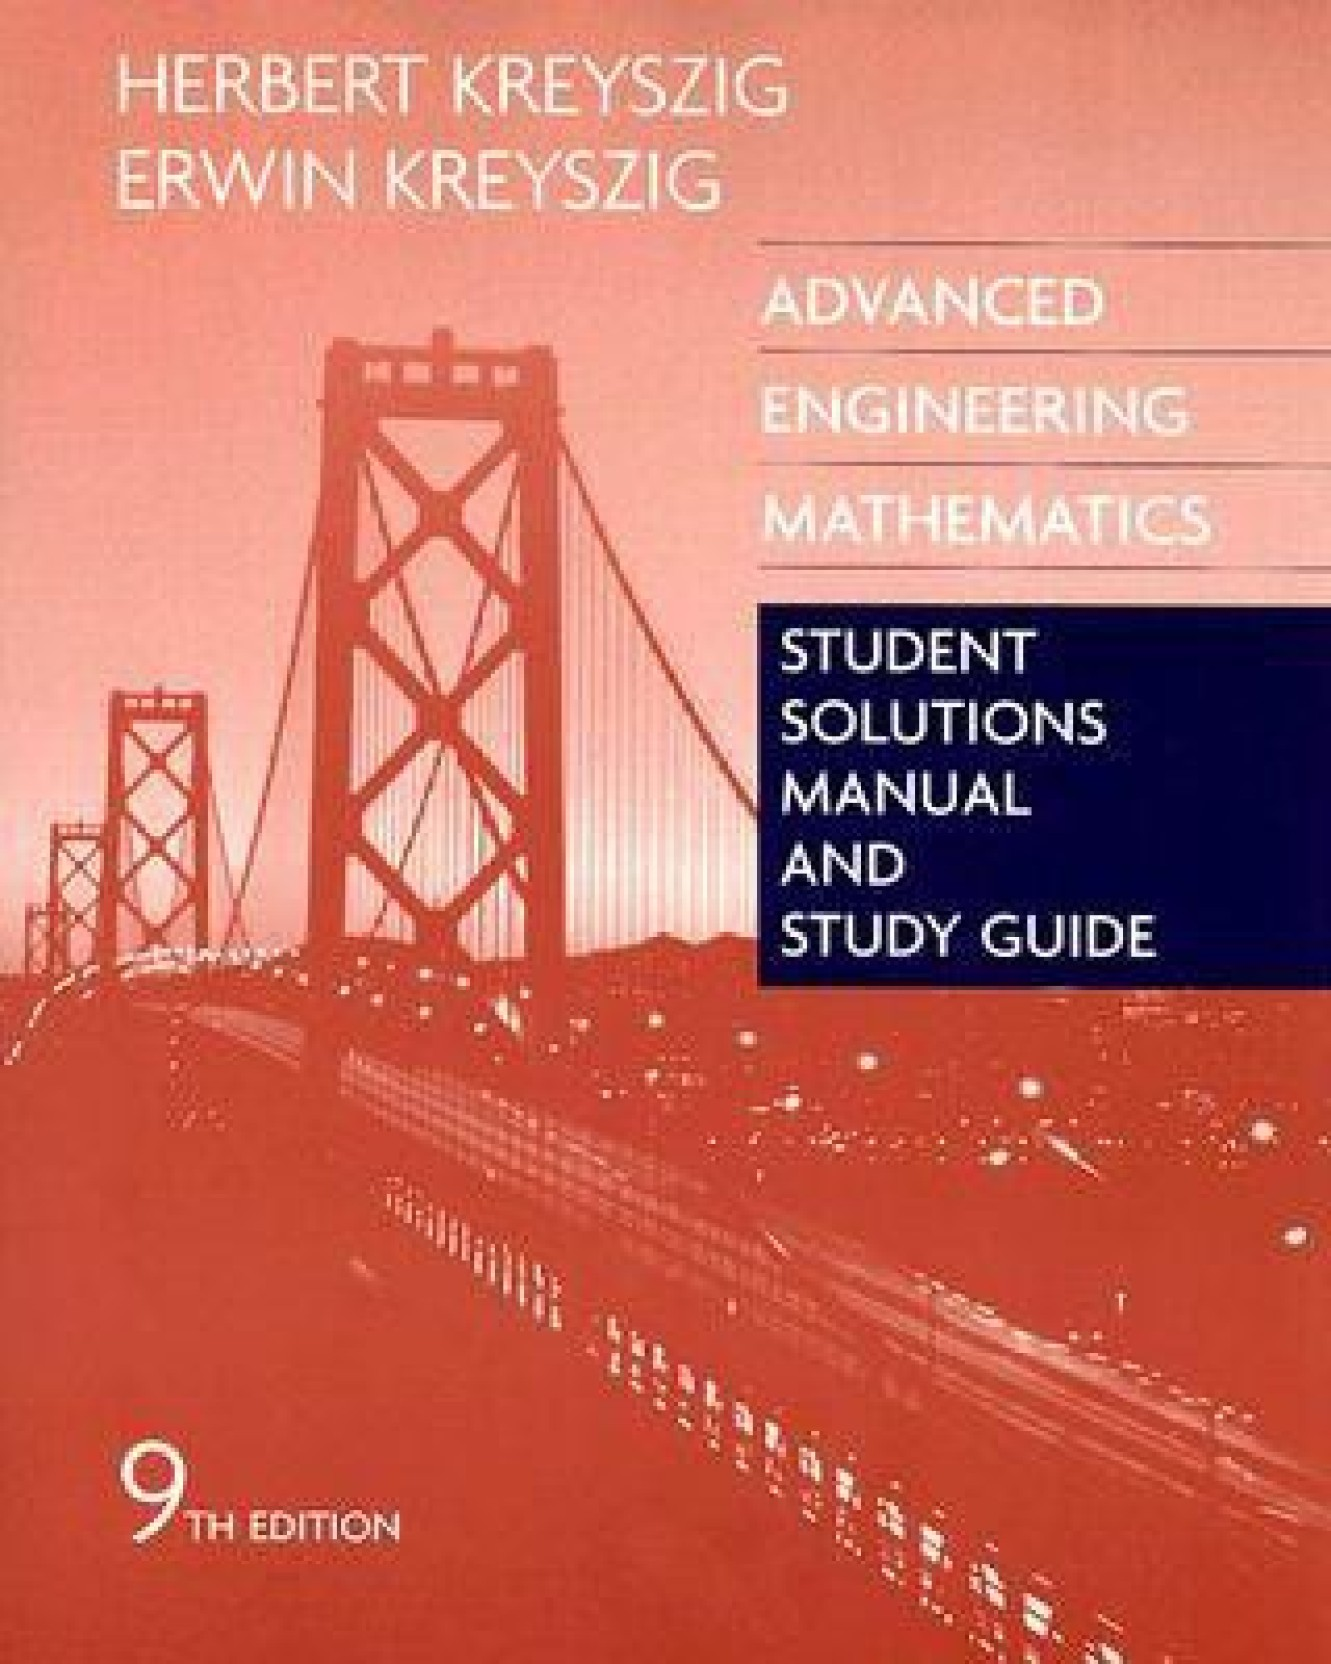 Advanced Engineering Mathematics, Student Solutions Manual and Study Guide.  Share